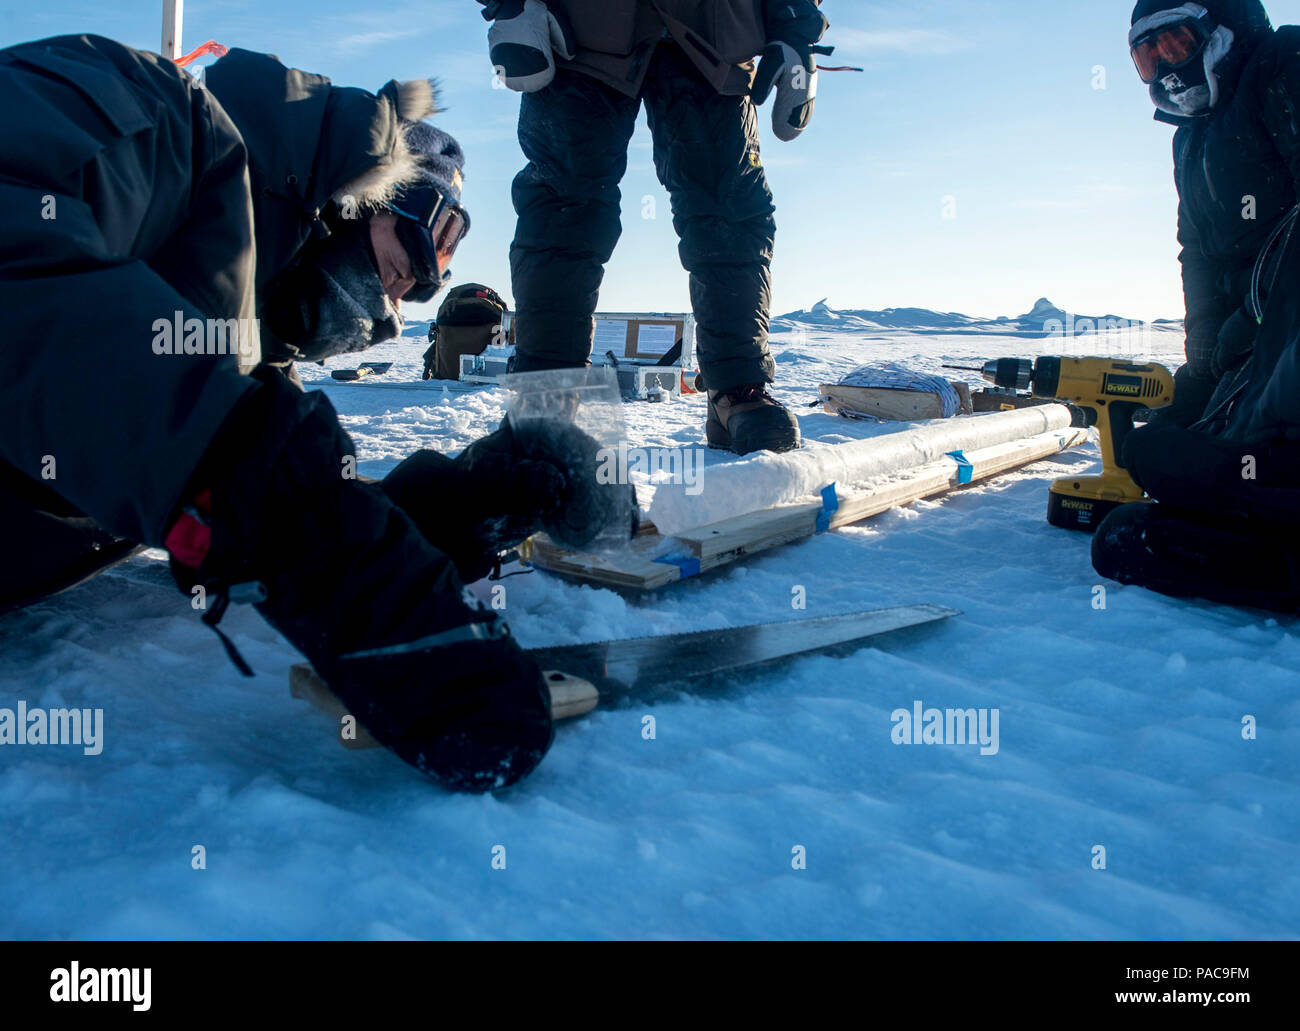 160308-N-QA919-002-1 Arctic Circle (March 08, 2016) - Dr. Rick Hagen, left, and Dr. Joan Gardner, with the Naval Research Laboratory (NRL) gather ice core samples in the Arctic Circle, March 8. The core samples will help the scientists measure salinity and density as part on an ongoing ice characterization research project, during Ice Exercise (ICEX) 2016. ICEX 2016 is a five-week exercise designed to research, test, and evaluate operational capabilities in the region. ICEX 2016 allows the U.S. Navy to assess operational readiness in the Arctic, increase experience in the region, advance under - Stock Image